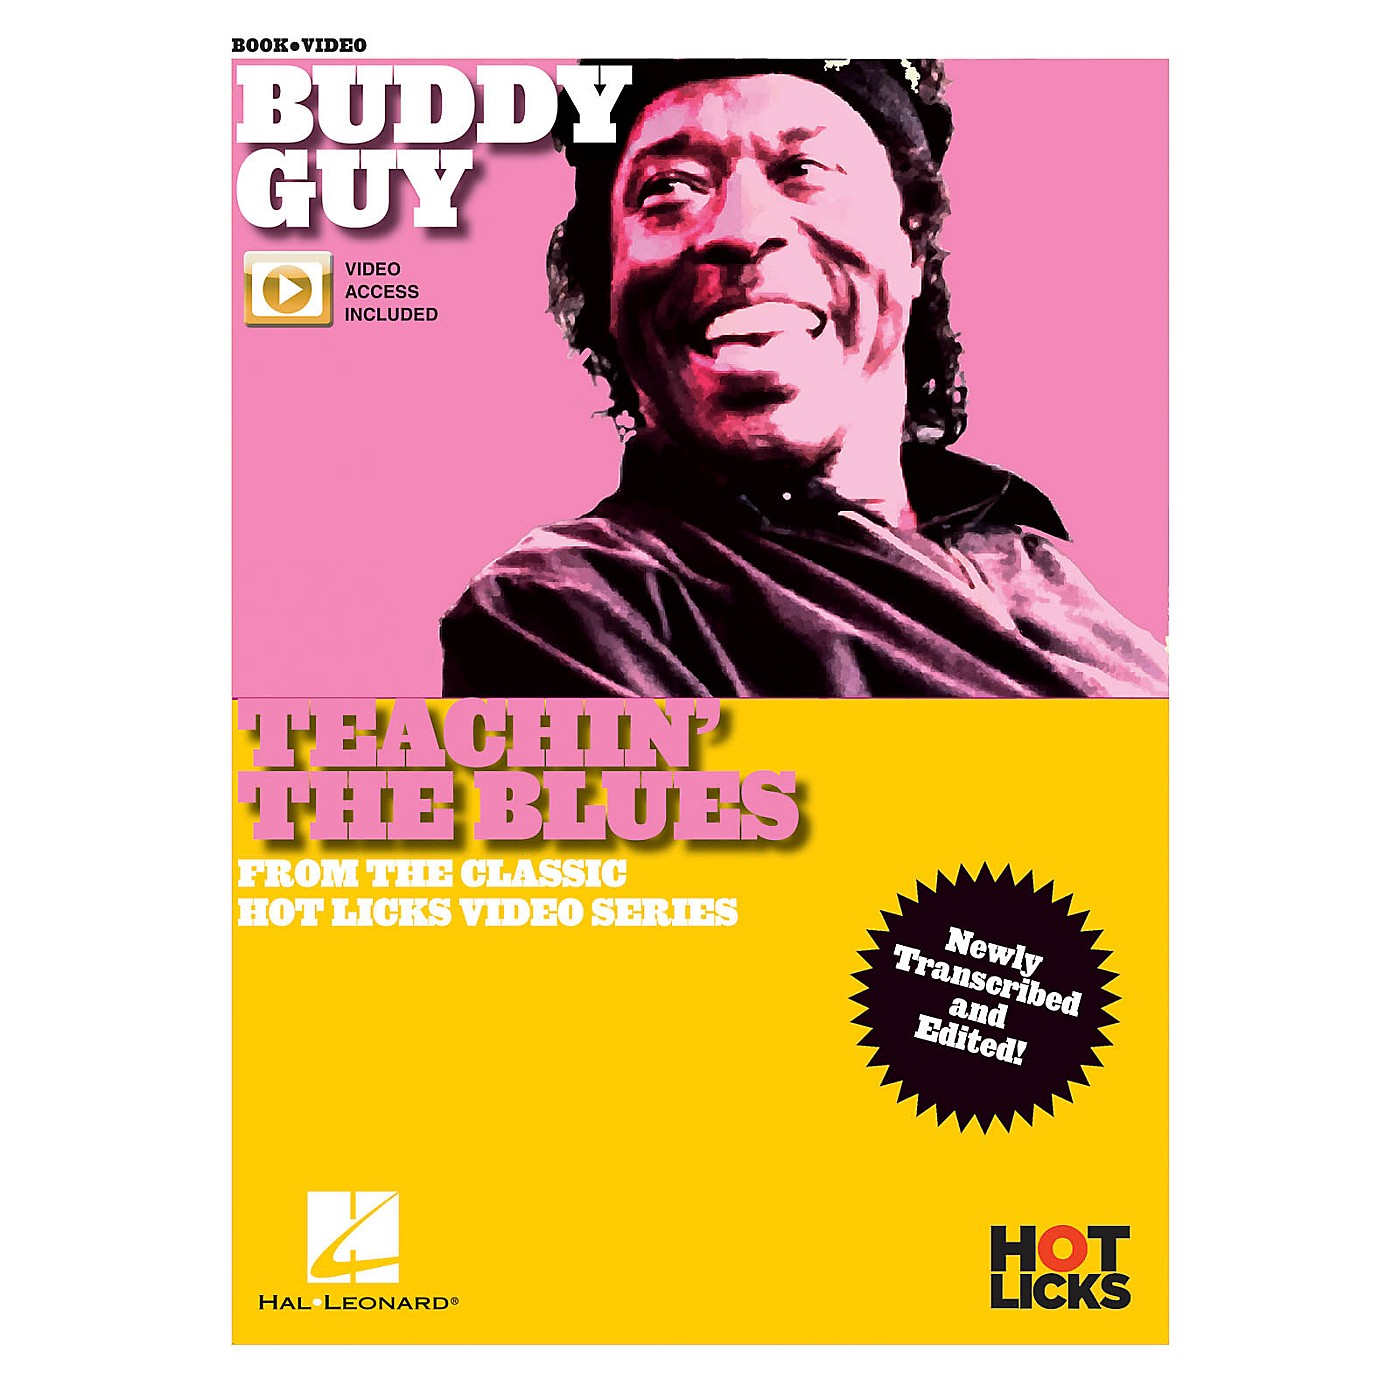 Hal Leonard Buddy Guy - Teachin' the Blues From the Classic Hot Licks Video Series Book/Video Online thumbnail